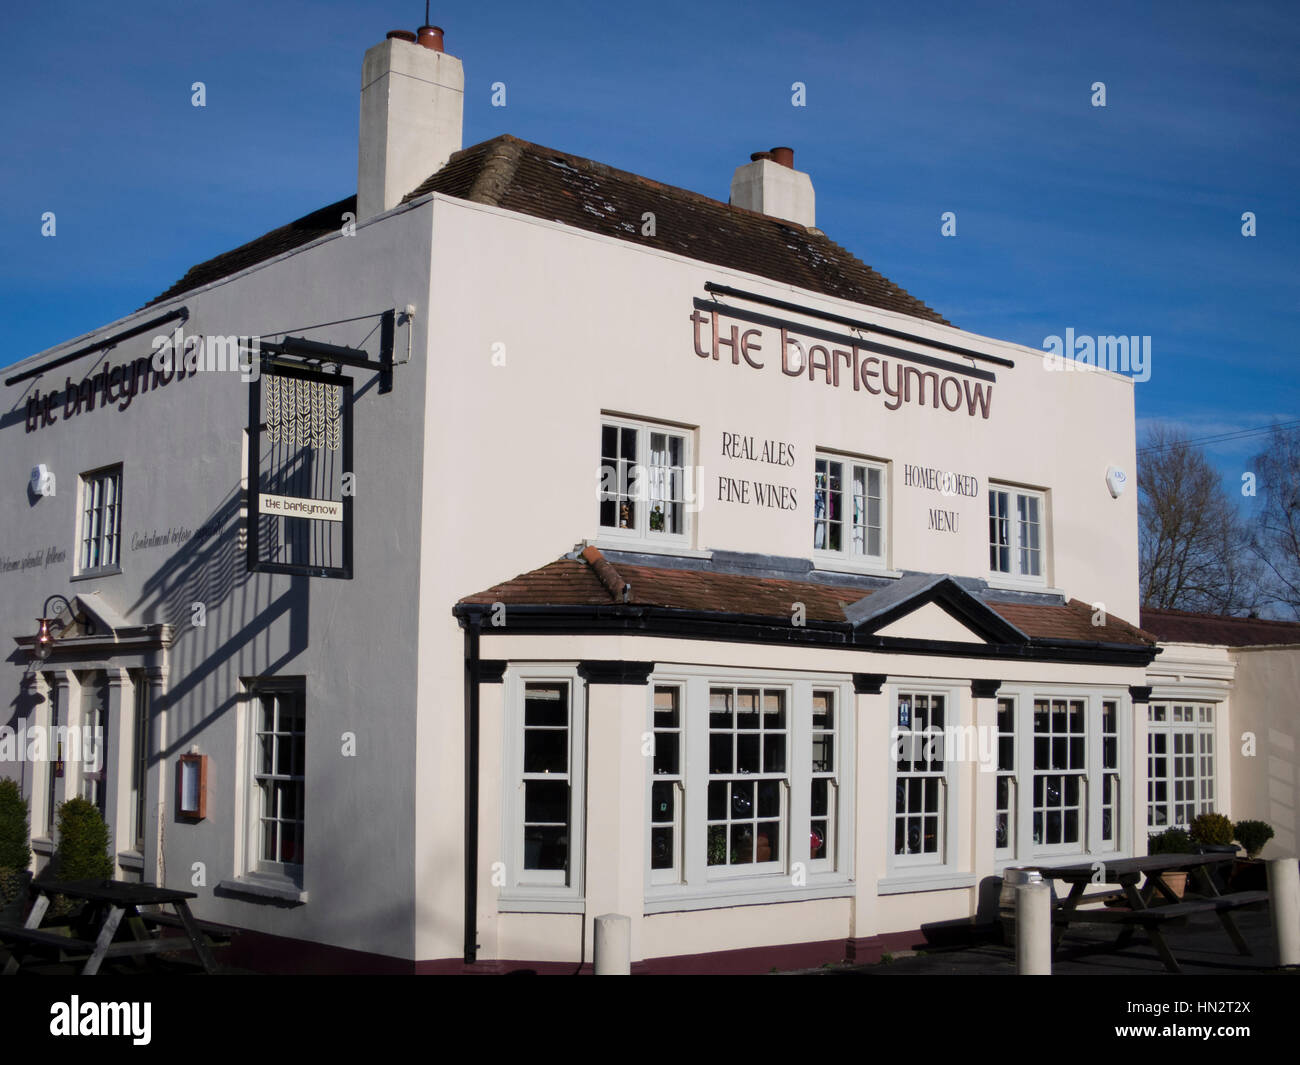 The Barley Mow Pub, Winchfield, Hants Stock Photo